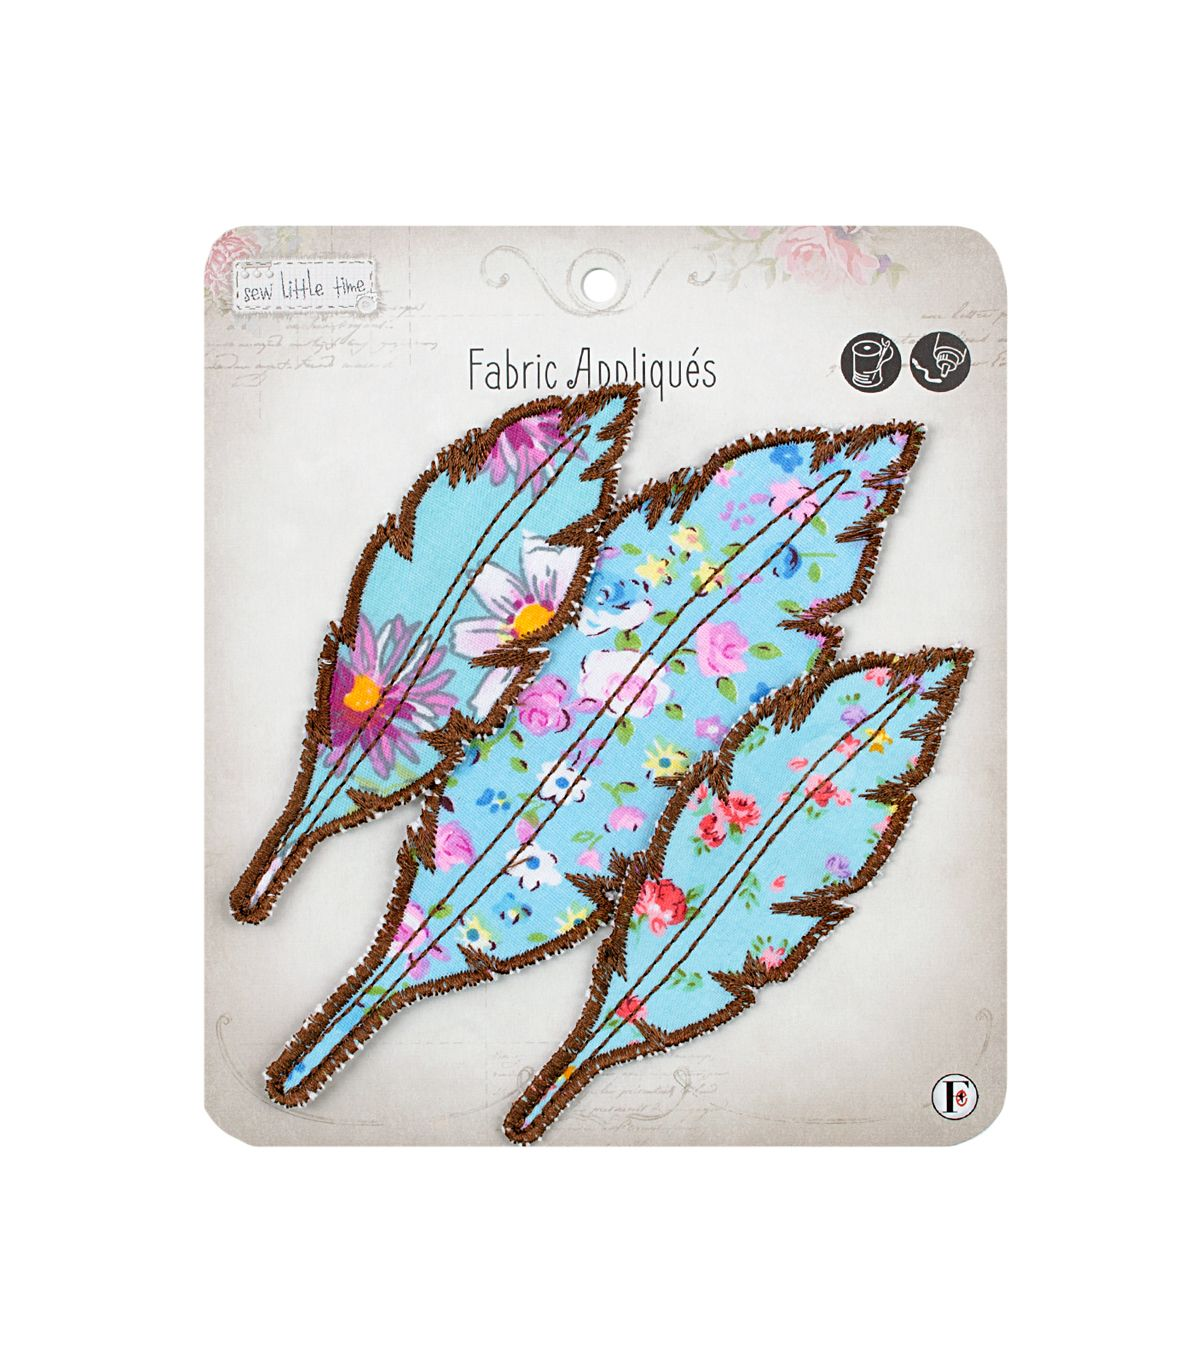 Sew Little Time Feathers applique available at Joann's Craft and